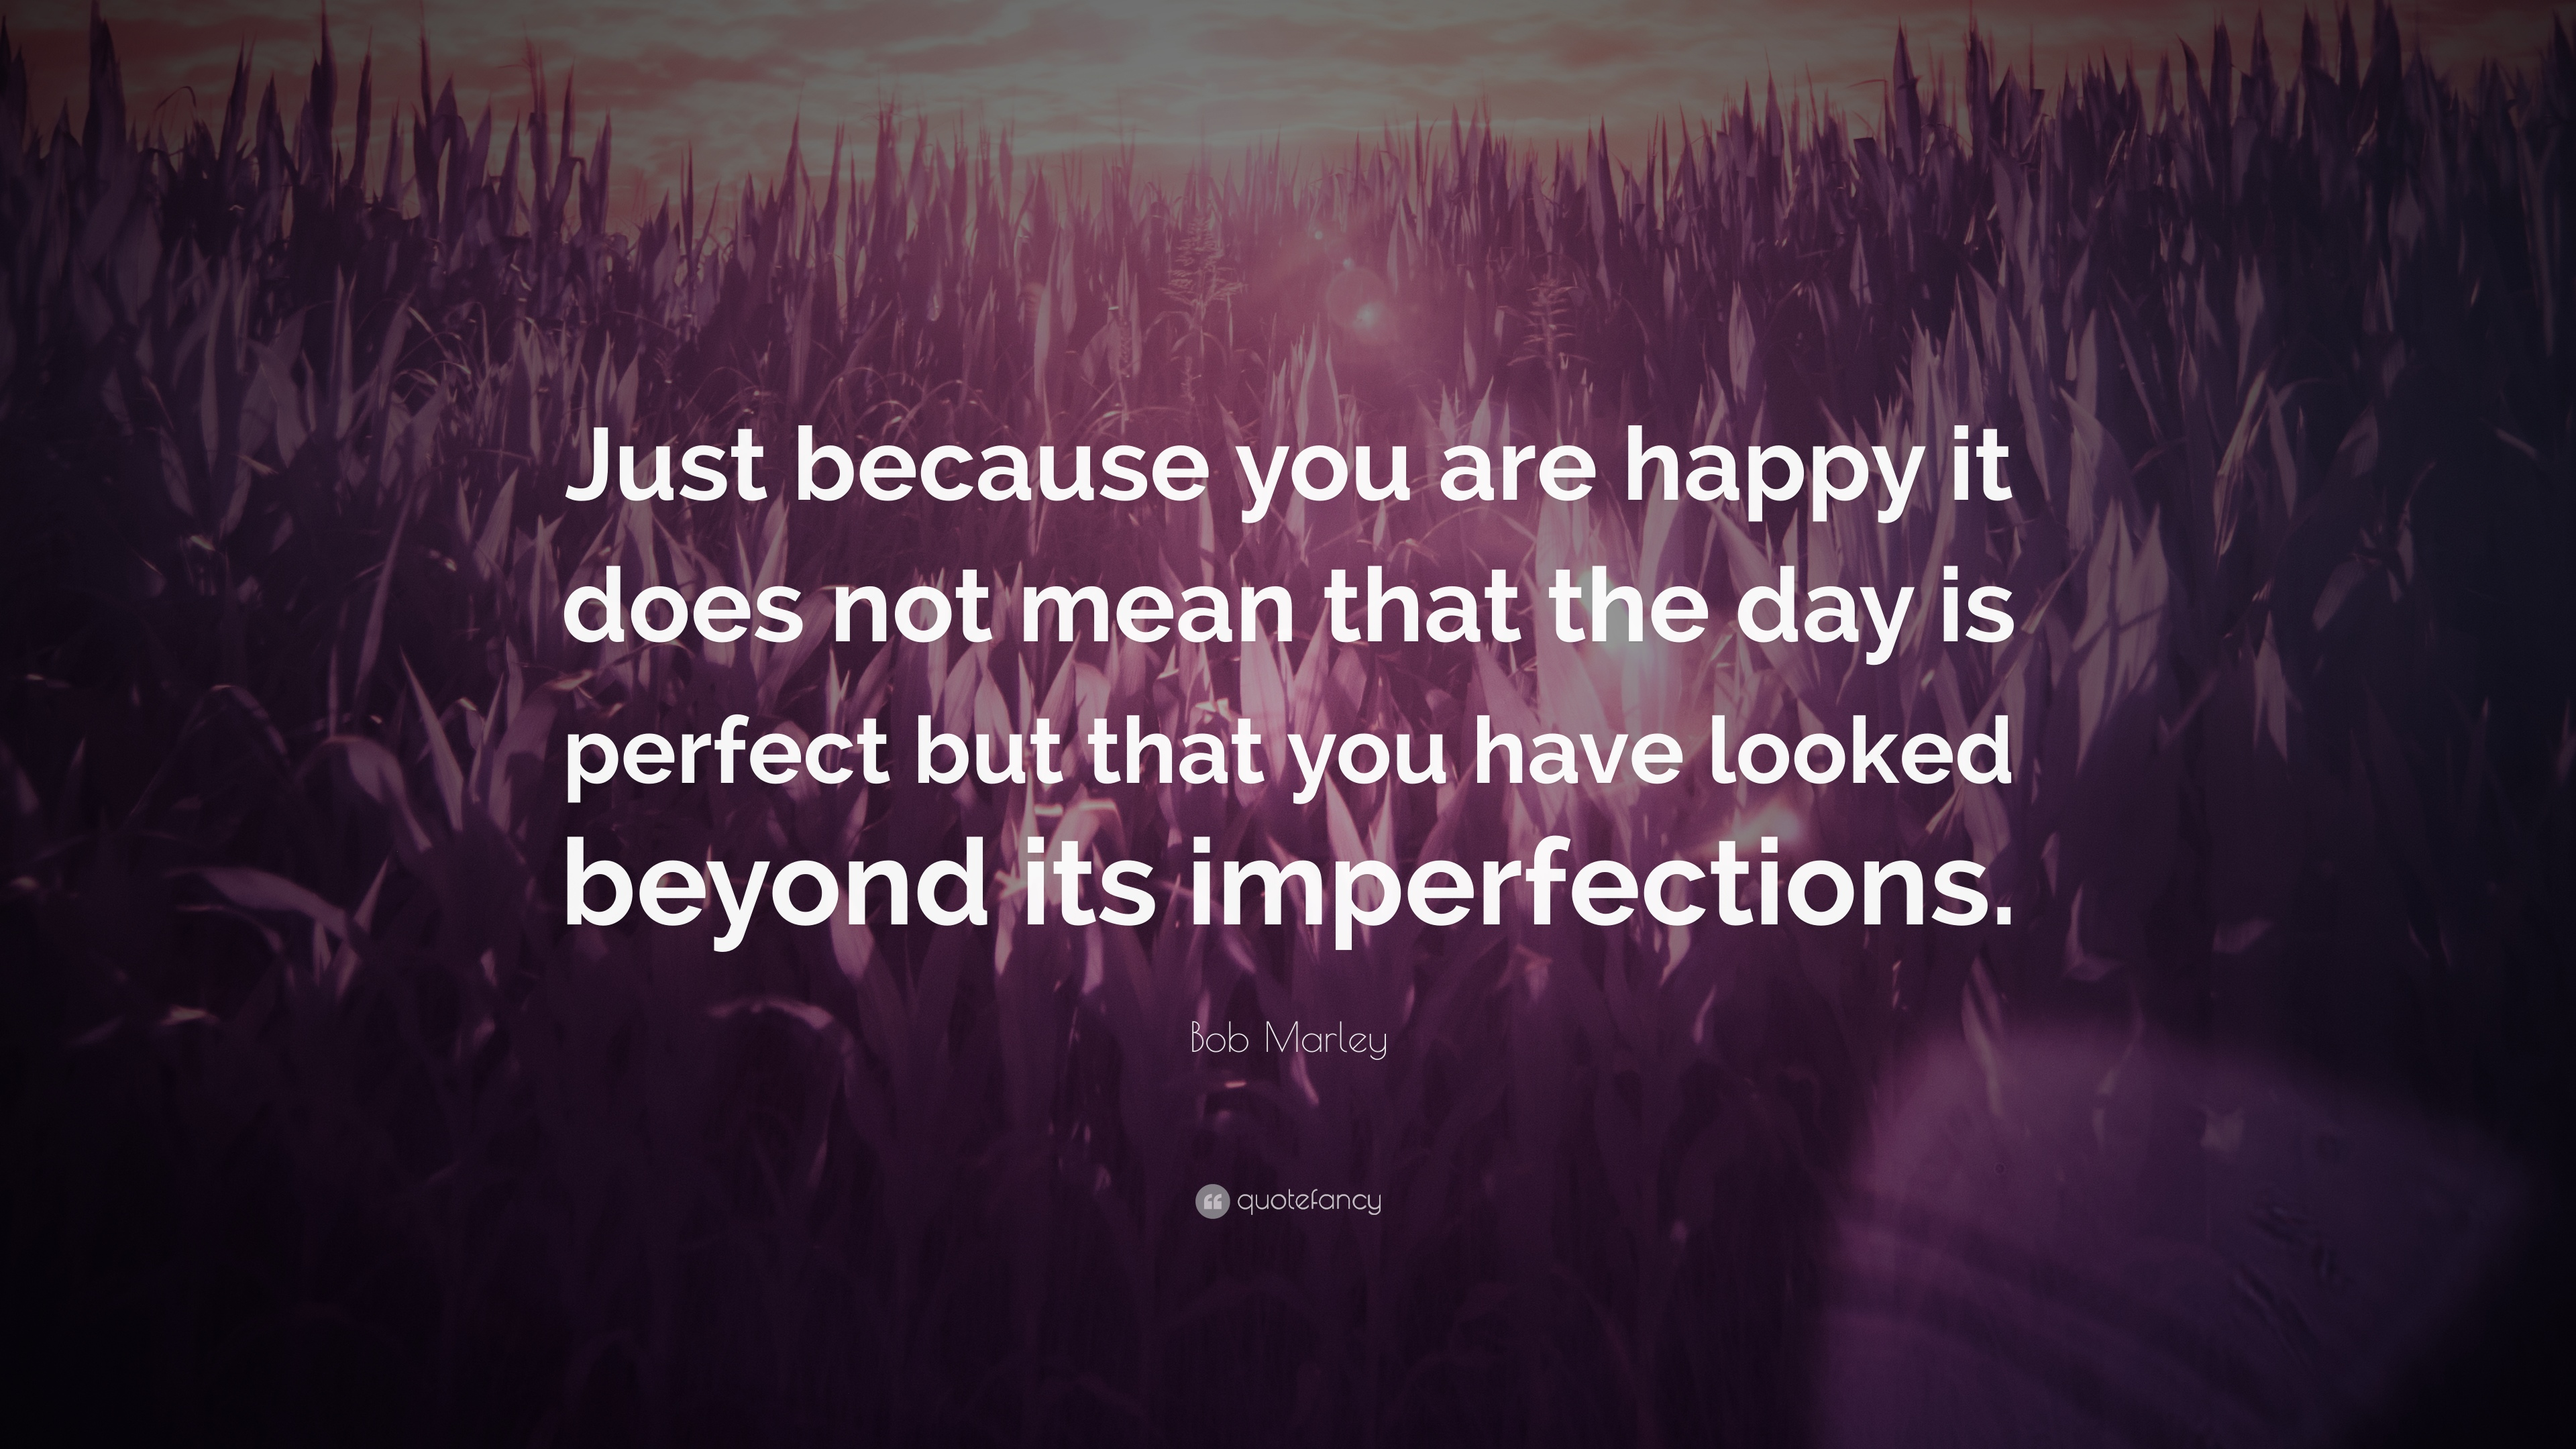 Bob Marley Quote: U201cJust Because You Are Happy It Does Not Mean That The